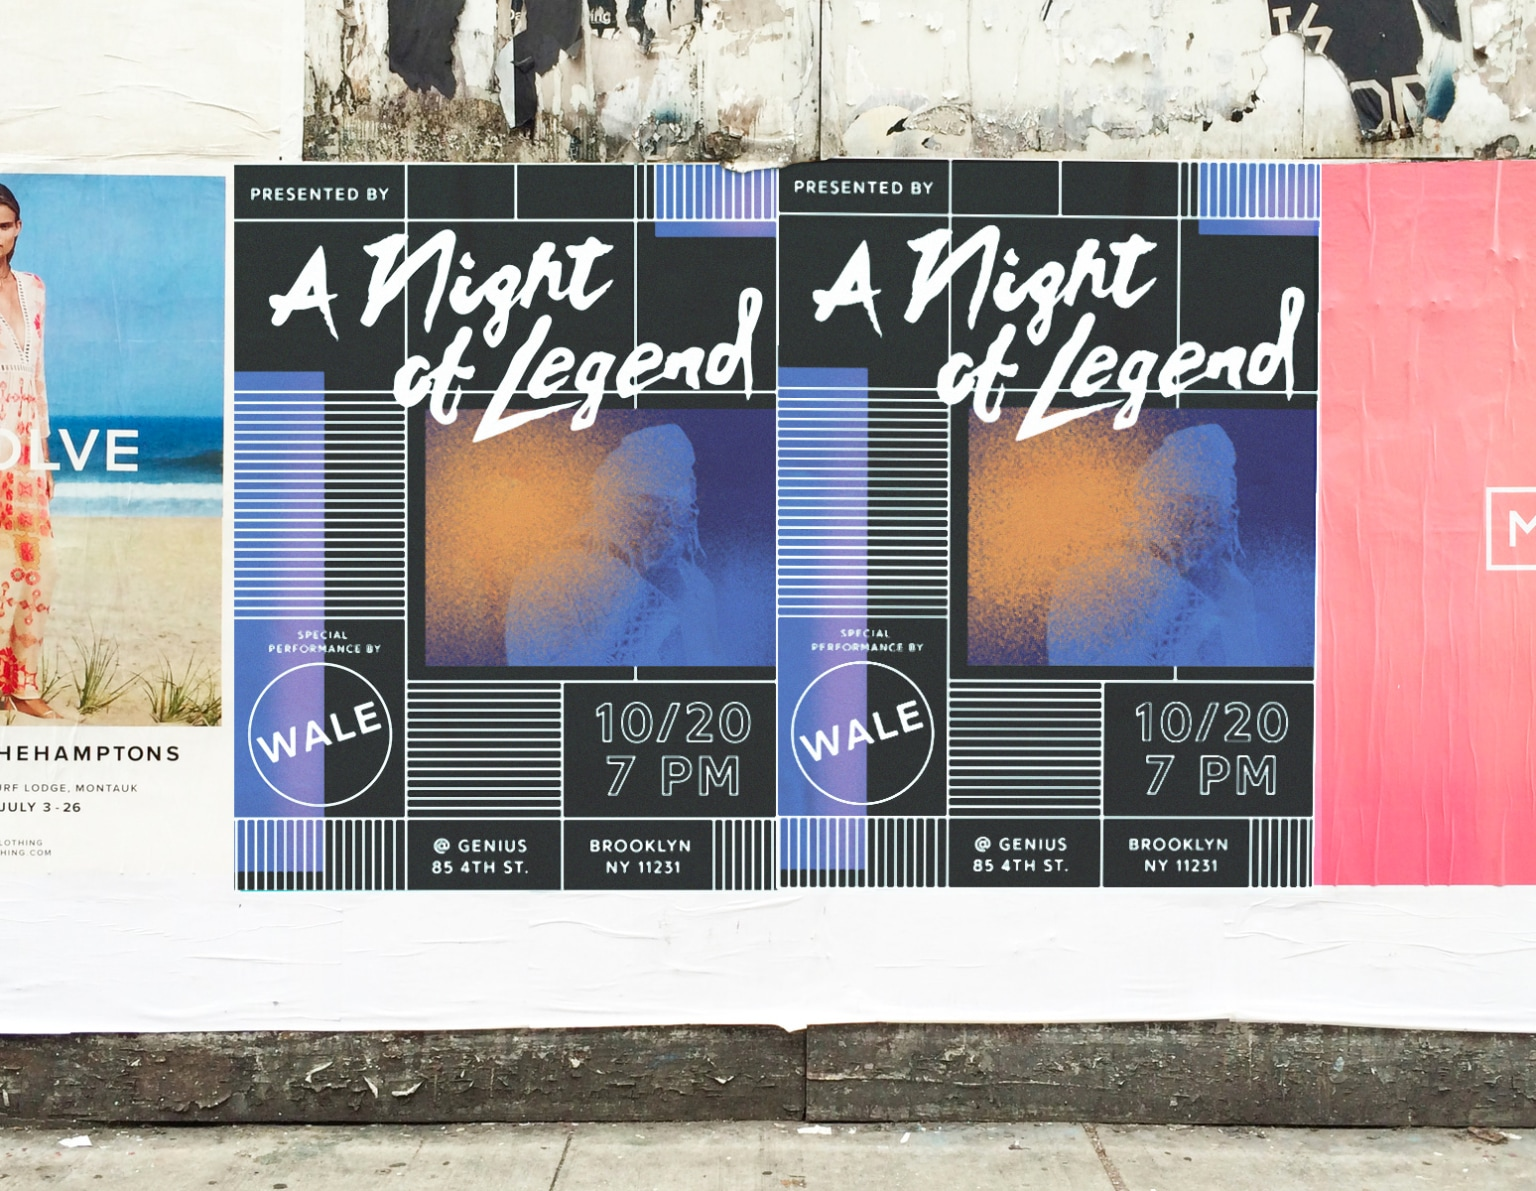 A Night of Legend